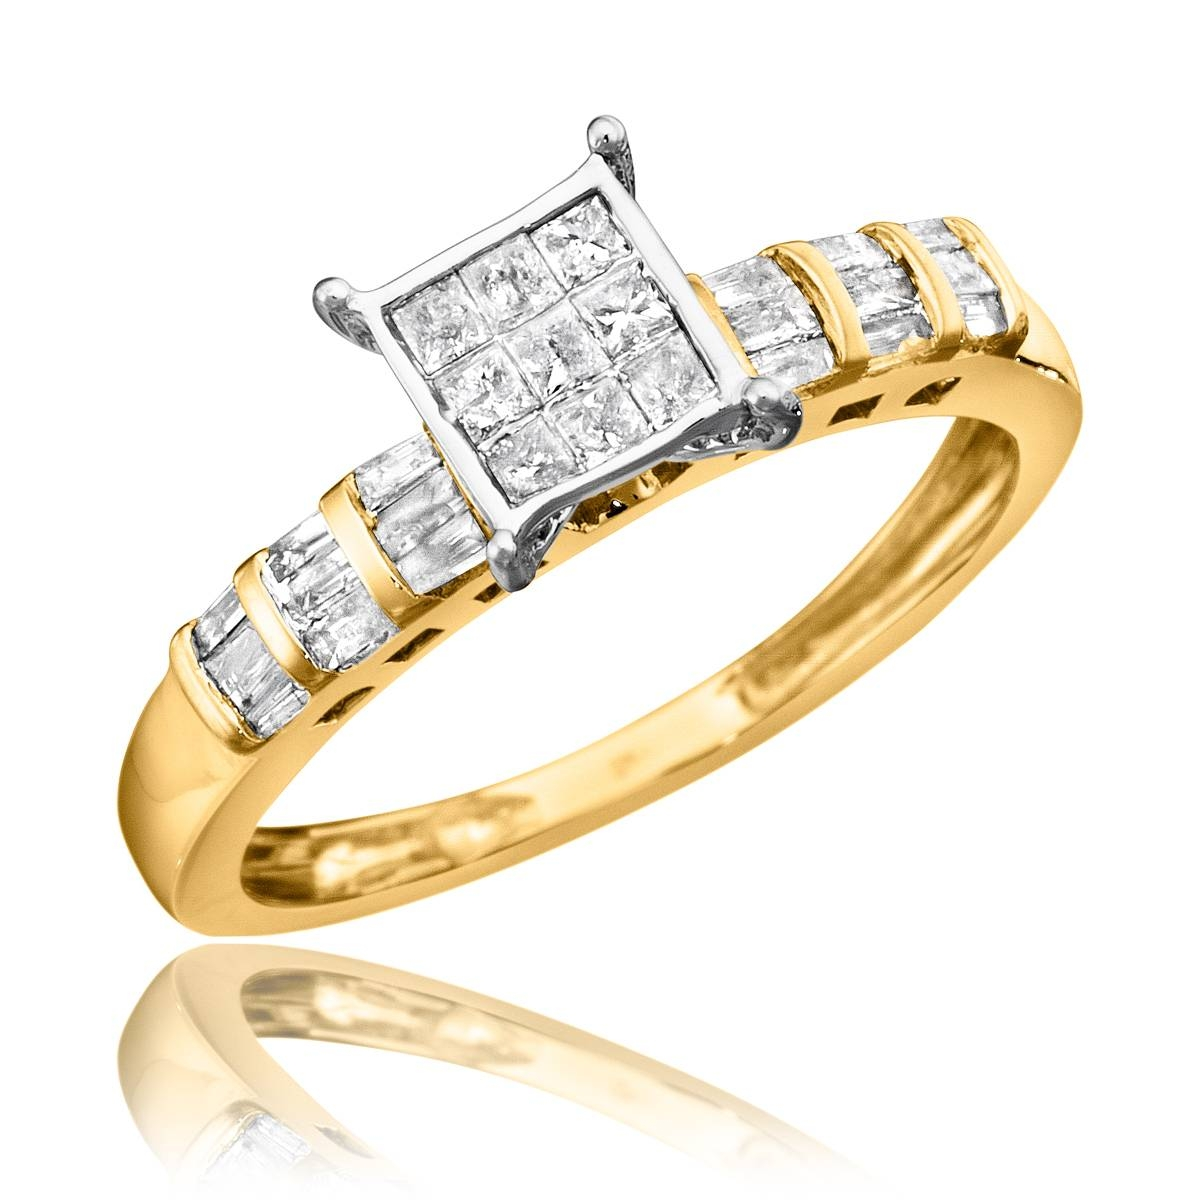 3/4 Carat Diamond Bridal Wedding Ring Set 10k Yellow Gold For Gold Engagement And Wedding Rings Sets (View 14 of 15)